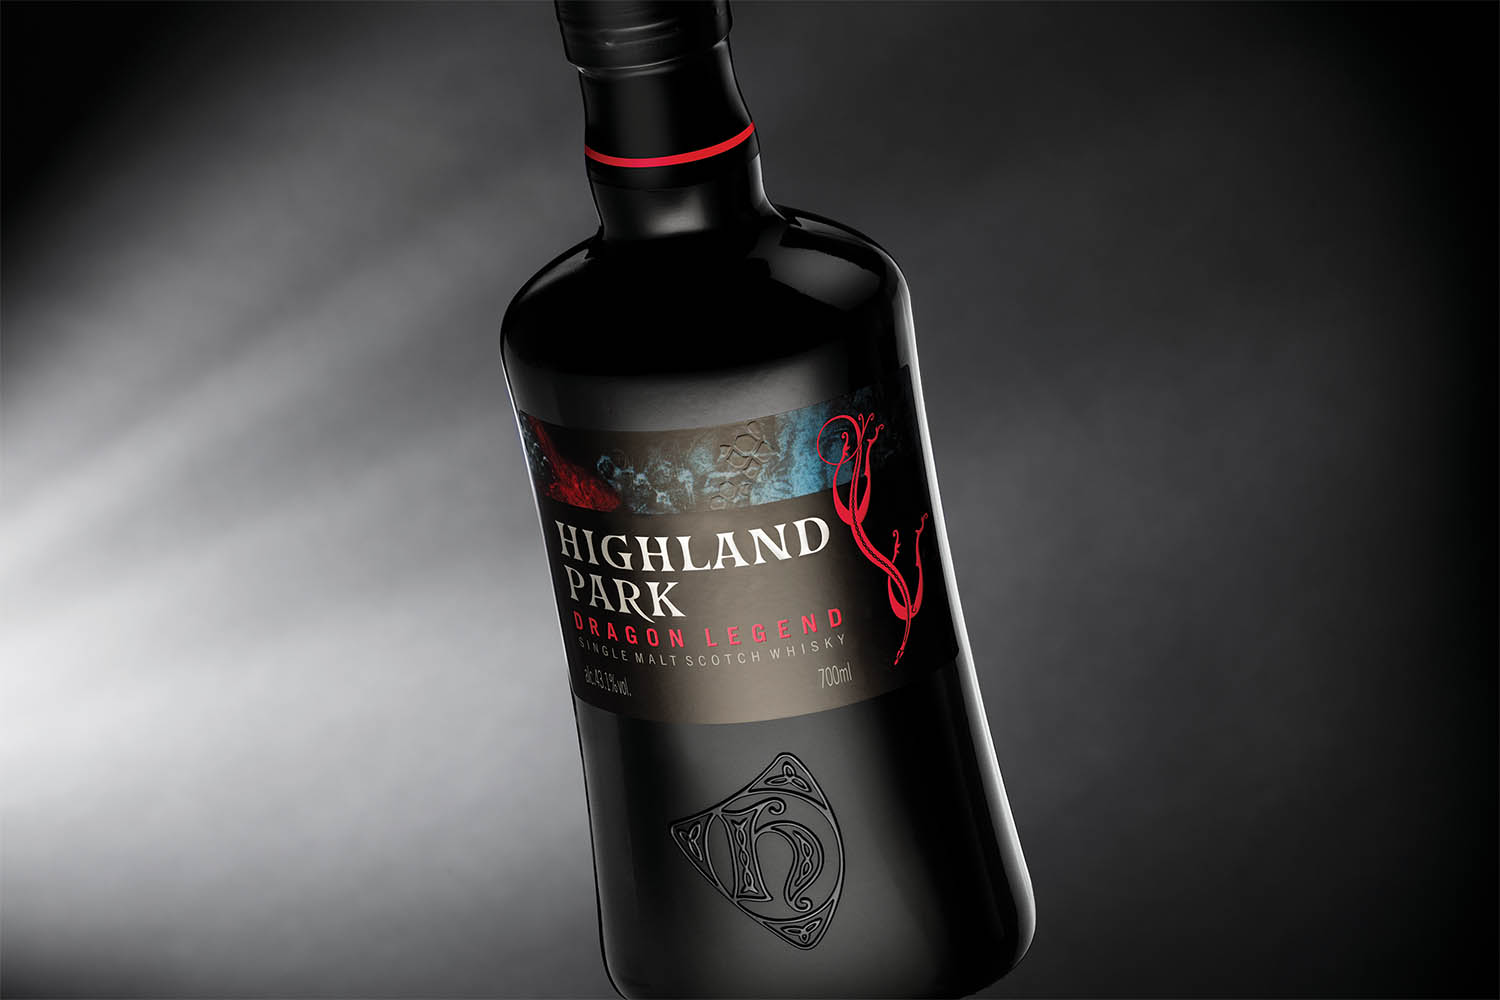 Mountain_Agency_Glasgow_Highland Park_Dragon Legend_003.jpg